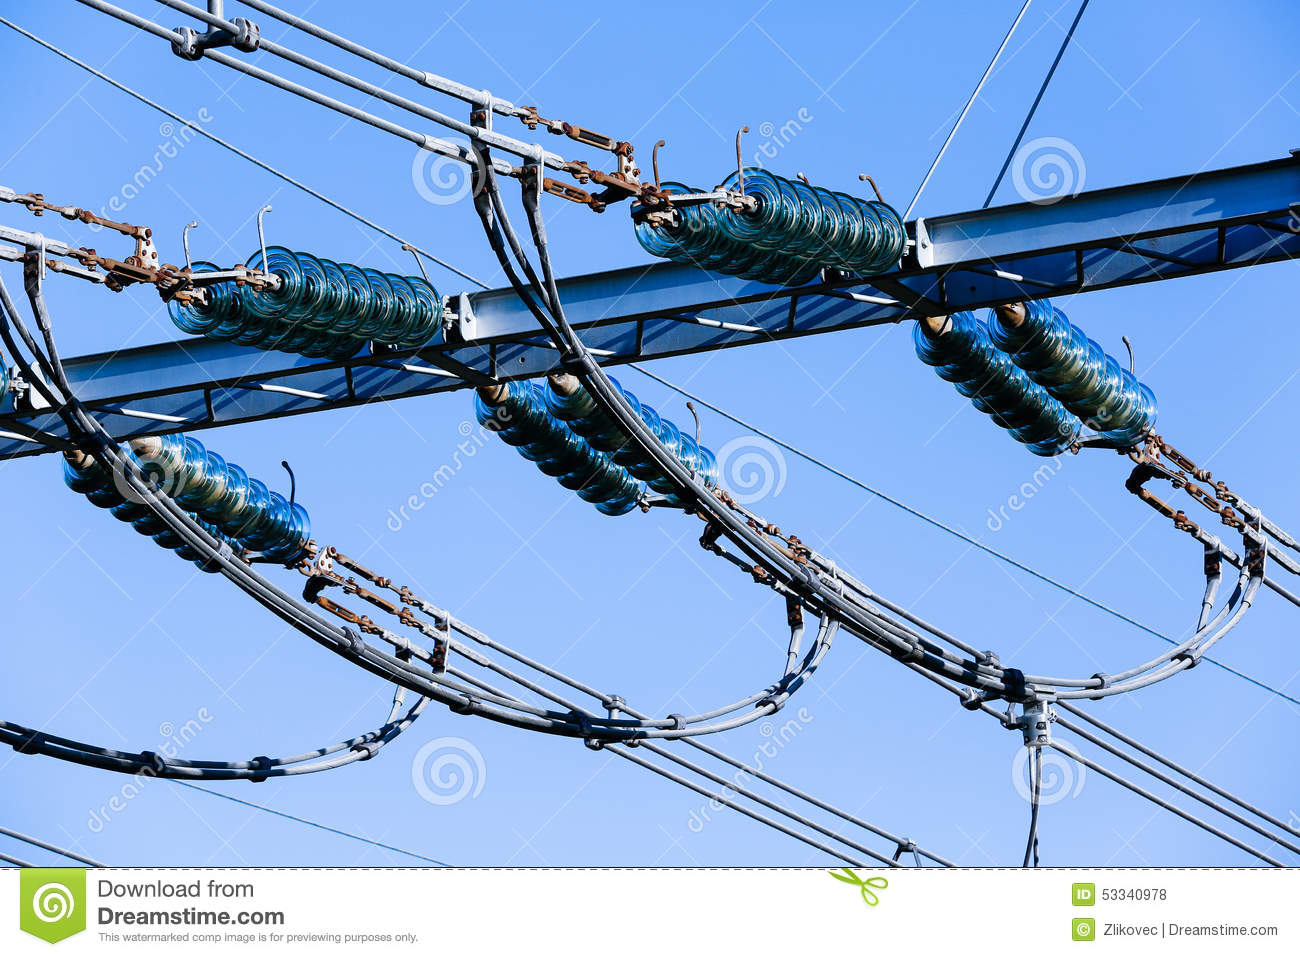 hight resolution of specialist electrical ceramic insulators on wiring in a converter station special type of transformer substation blue sky background power